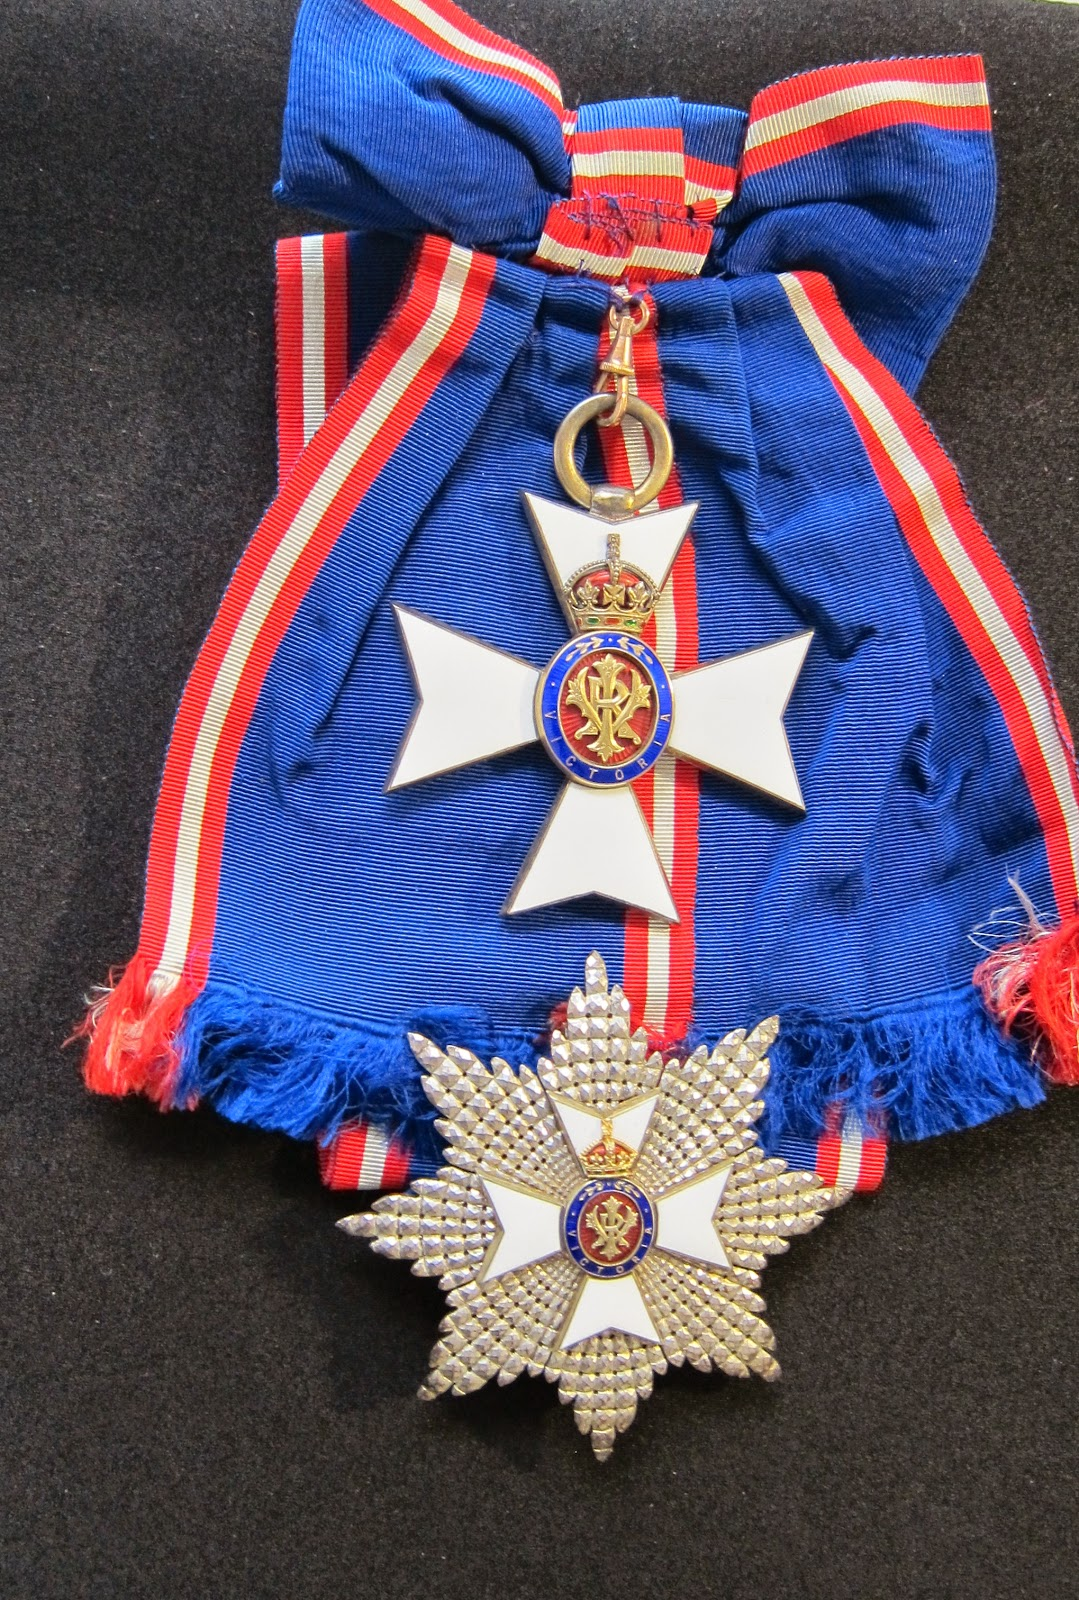 G.C.V.O. sash badge and  breast star  (British Medals website)